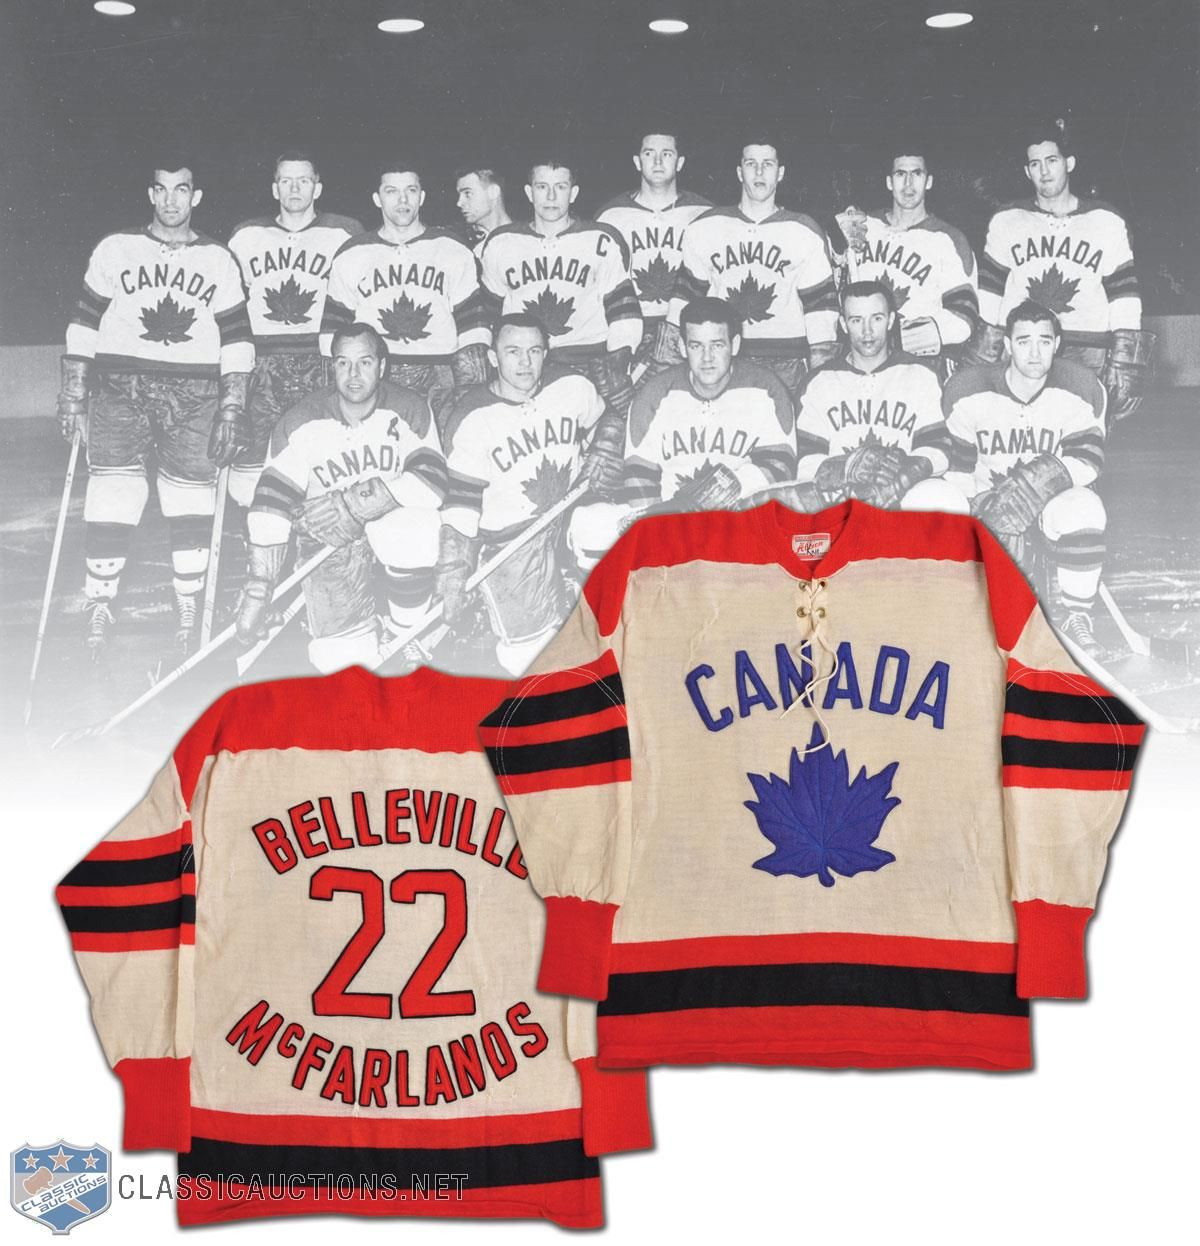 Canadian Blue: Belleville's McFarlands wore a blue leaf (and petiole) to the 1959 World Championships in Prague, Czechoslovakia. (Photo: Classic Auctions)